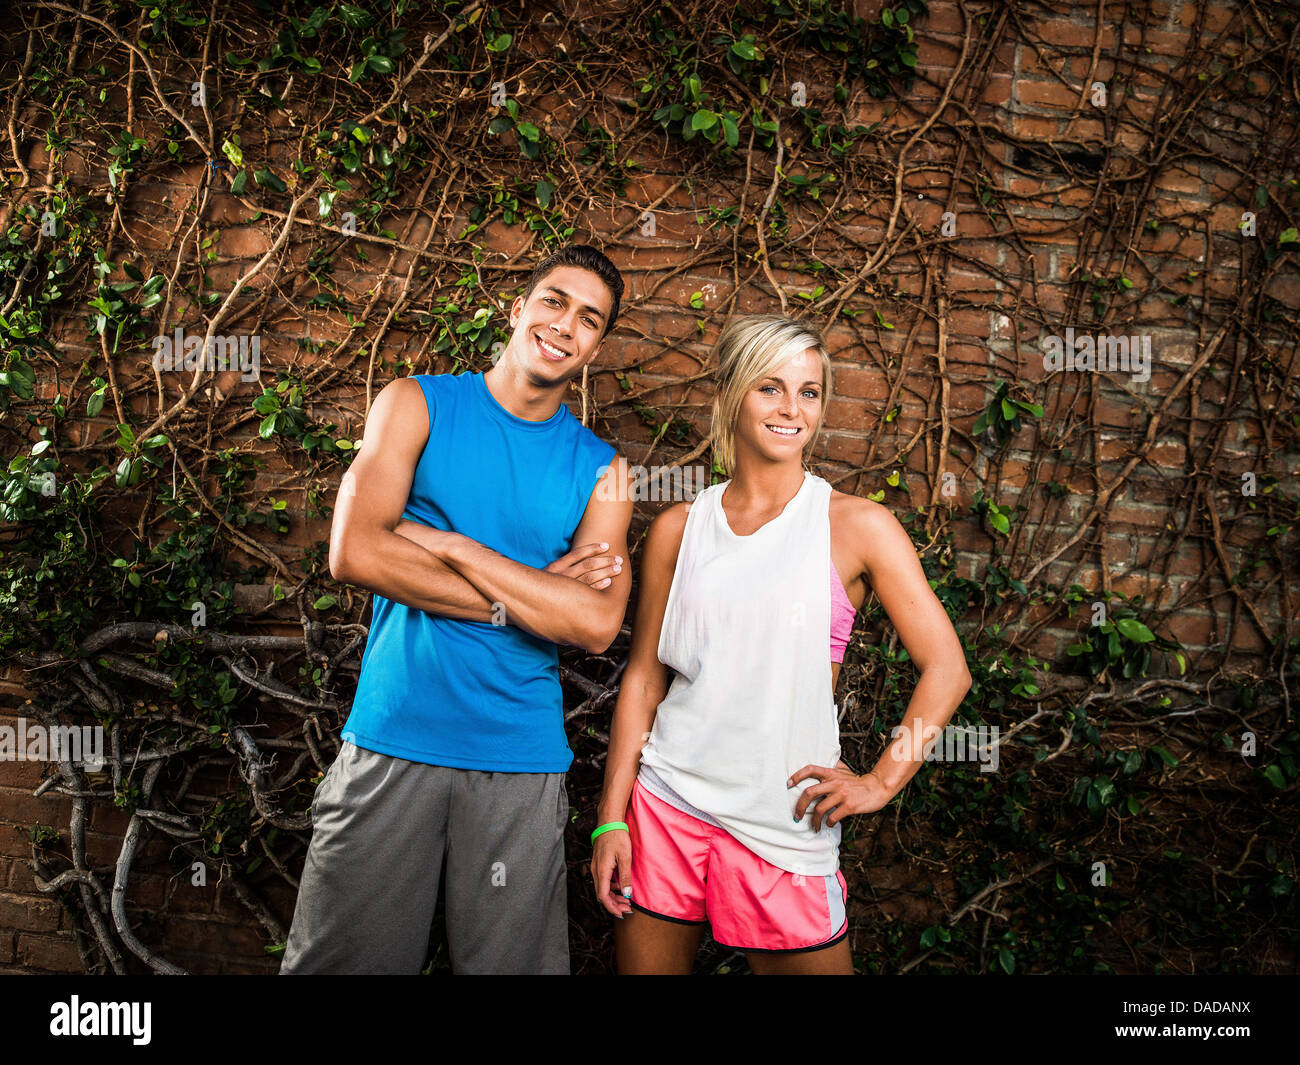 Young man and woman ready for exercise - Stock Image